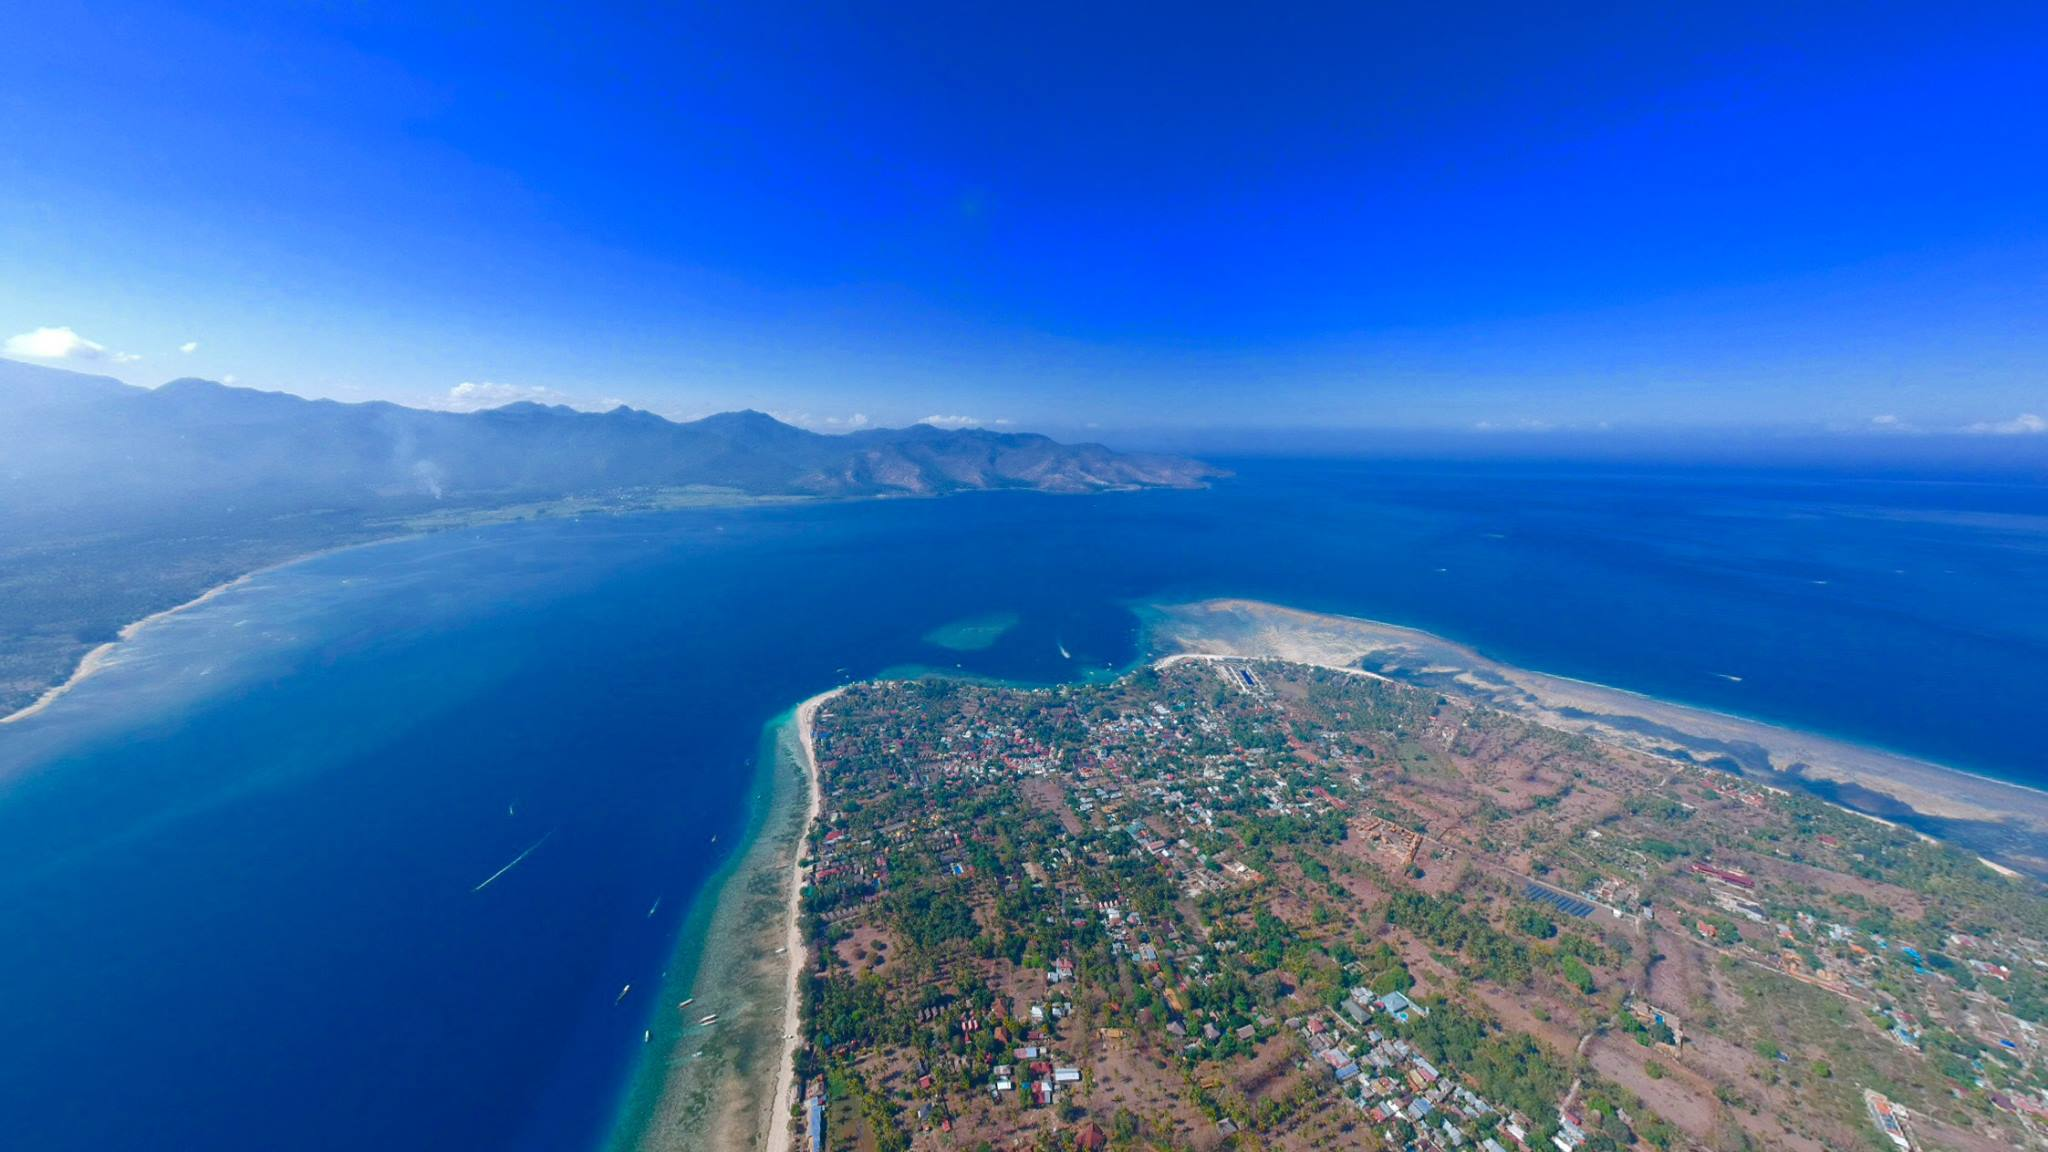 Gili Lombok Plan Your Trip To The Gili Islands In Indonesia With Our